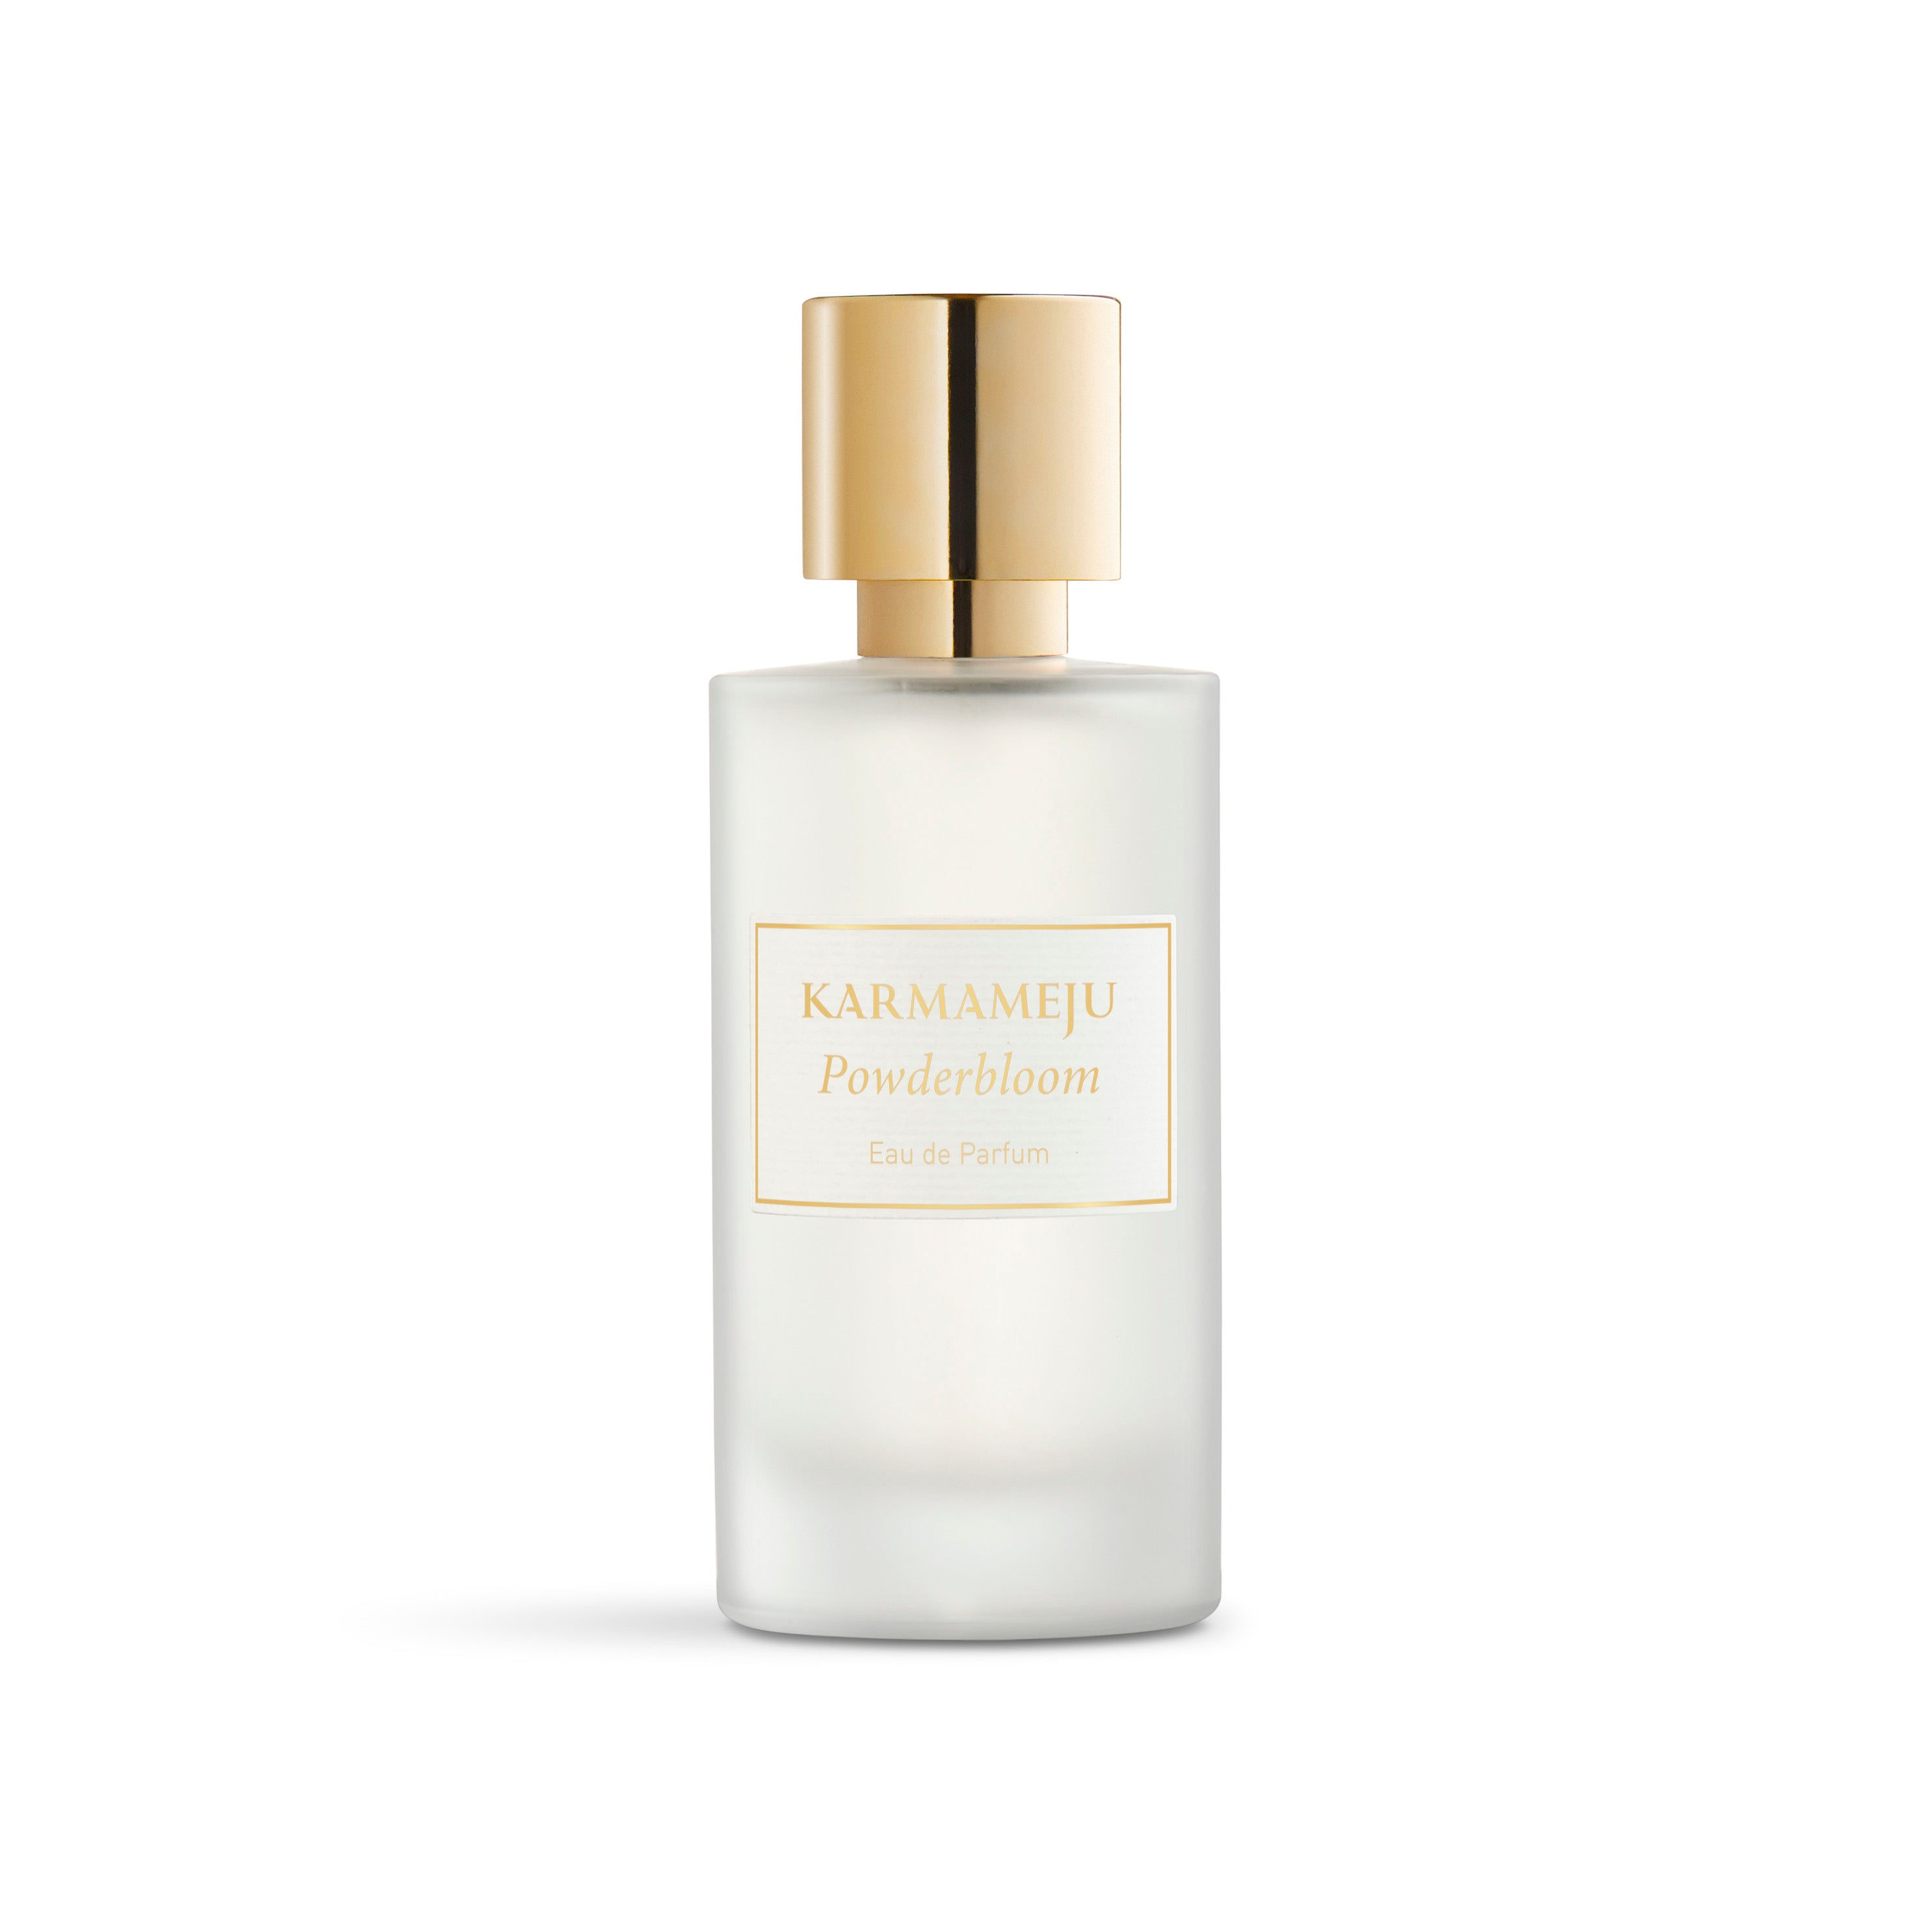 POWDERBLOOM / Eau de Parfum 50 ml.